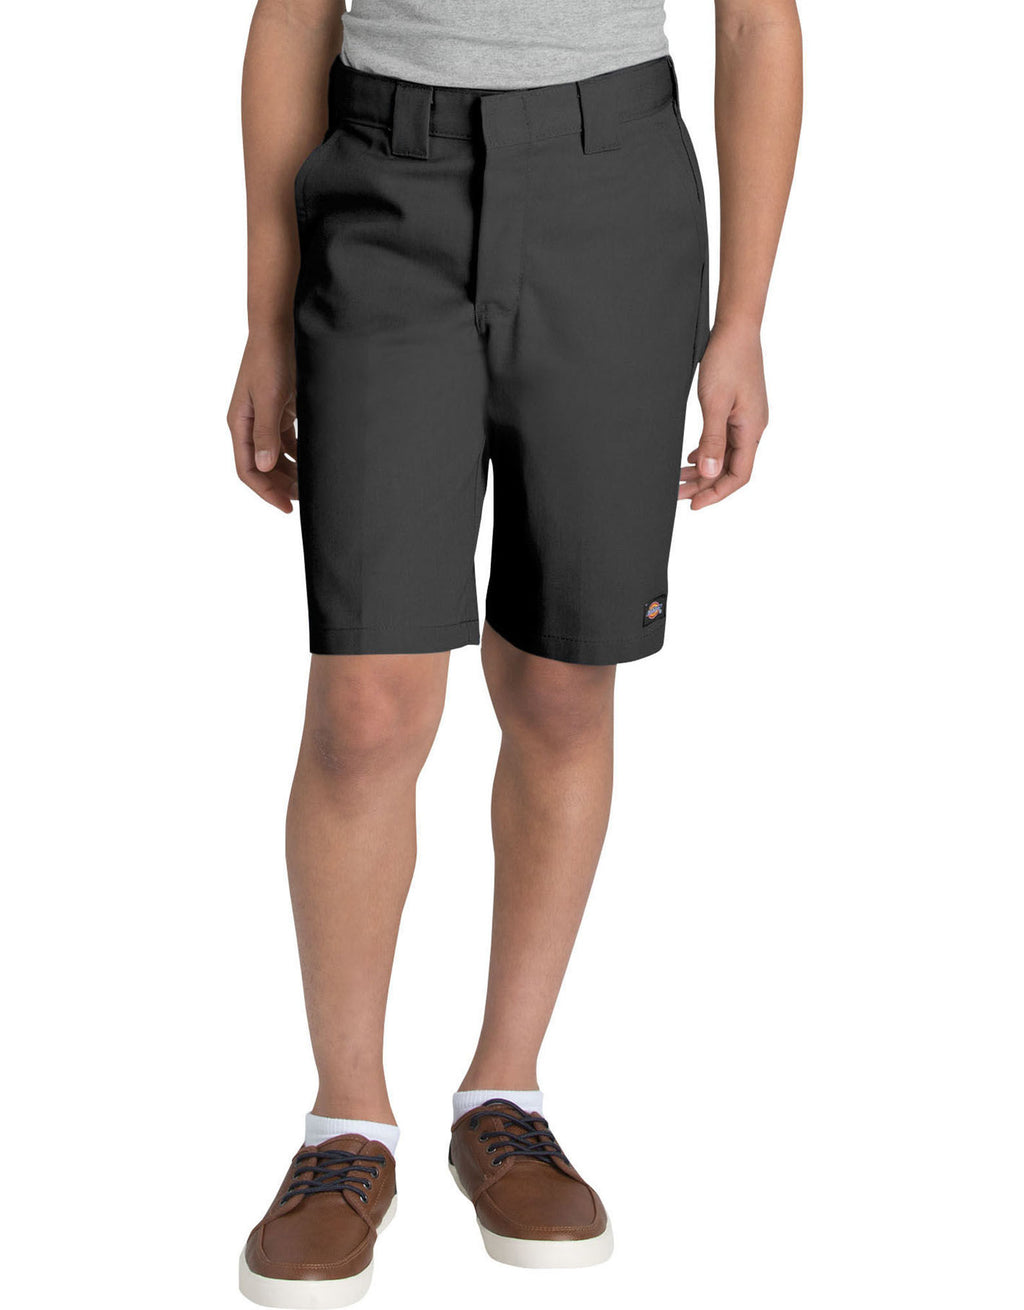 Dickies Boys Multi-Use Pocket Shorts, 8-20 Husky